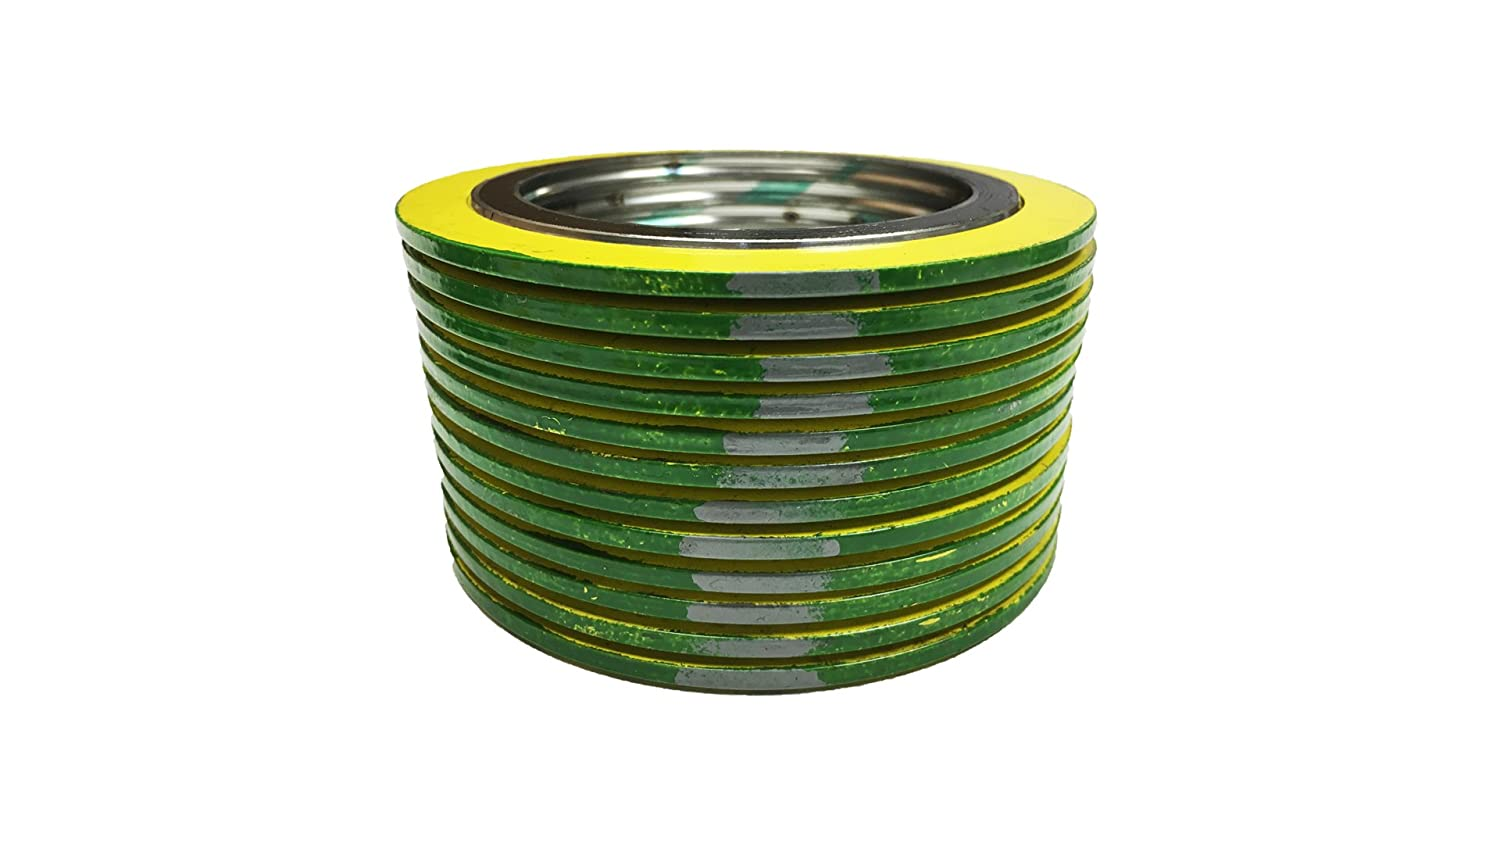 of NJ green Band with Grey Stripes Pack of 12 for 2 Pipe Supplied by Sur-Seal Inc Sterling Seal 90002316GR1500X12 316L Stainless Steel spiral Wound Gasket with Flexible Graphite Filler for 2 Pipe Pressure Class 1500# QTY: 12